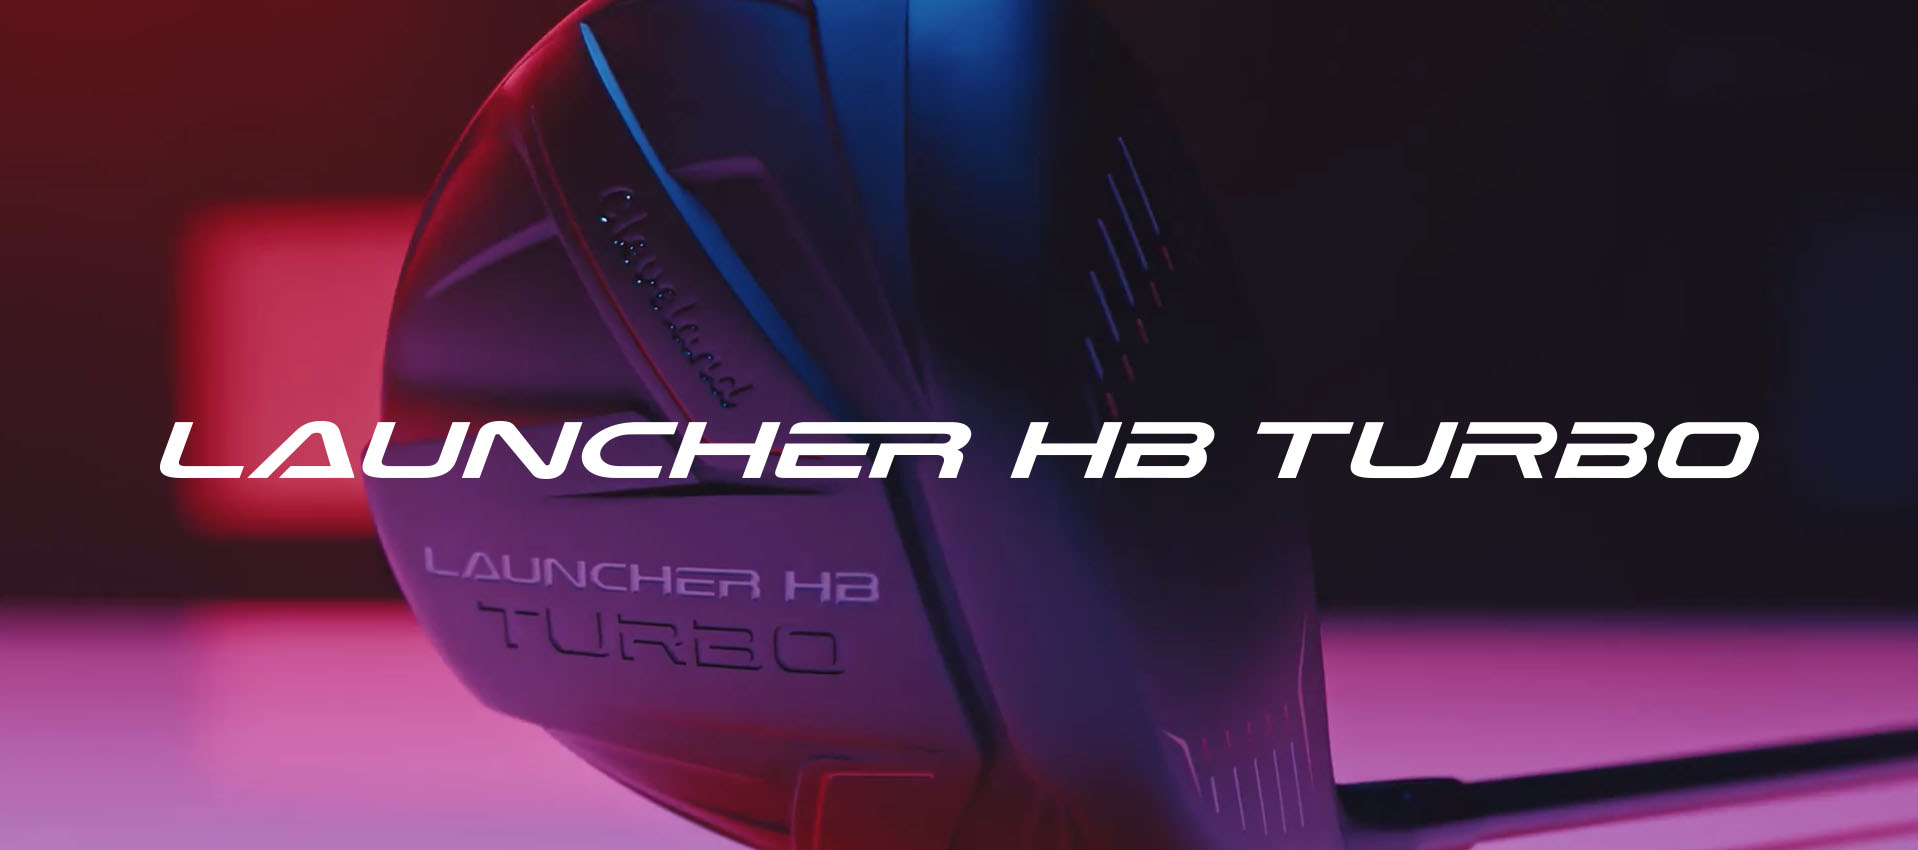 Cleveland Golf Launcher HB Turbo Woods image prism